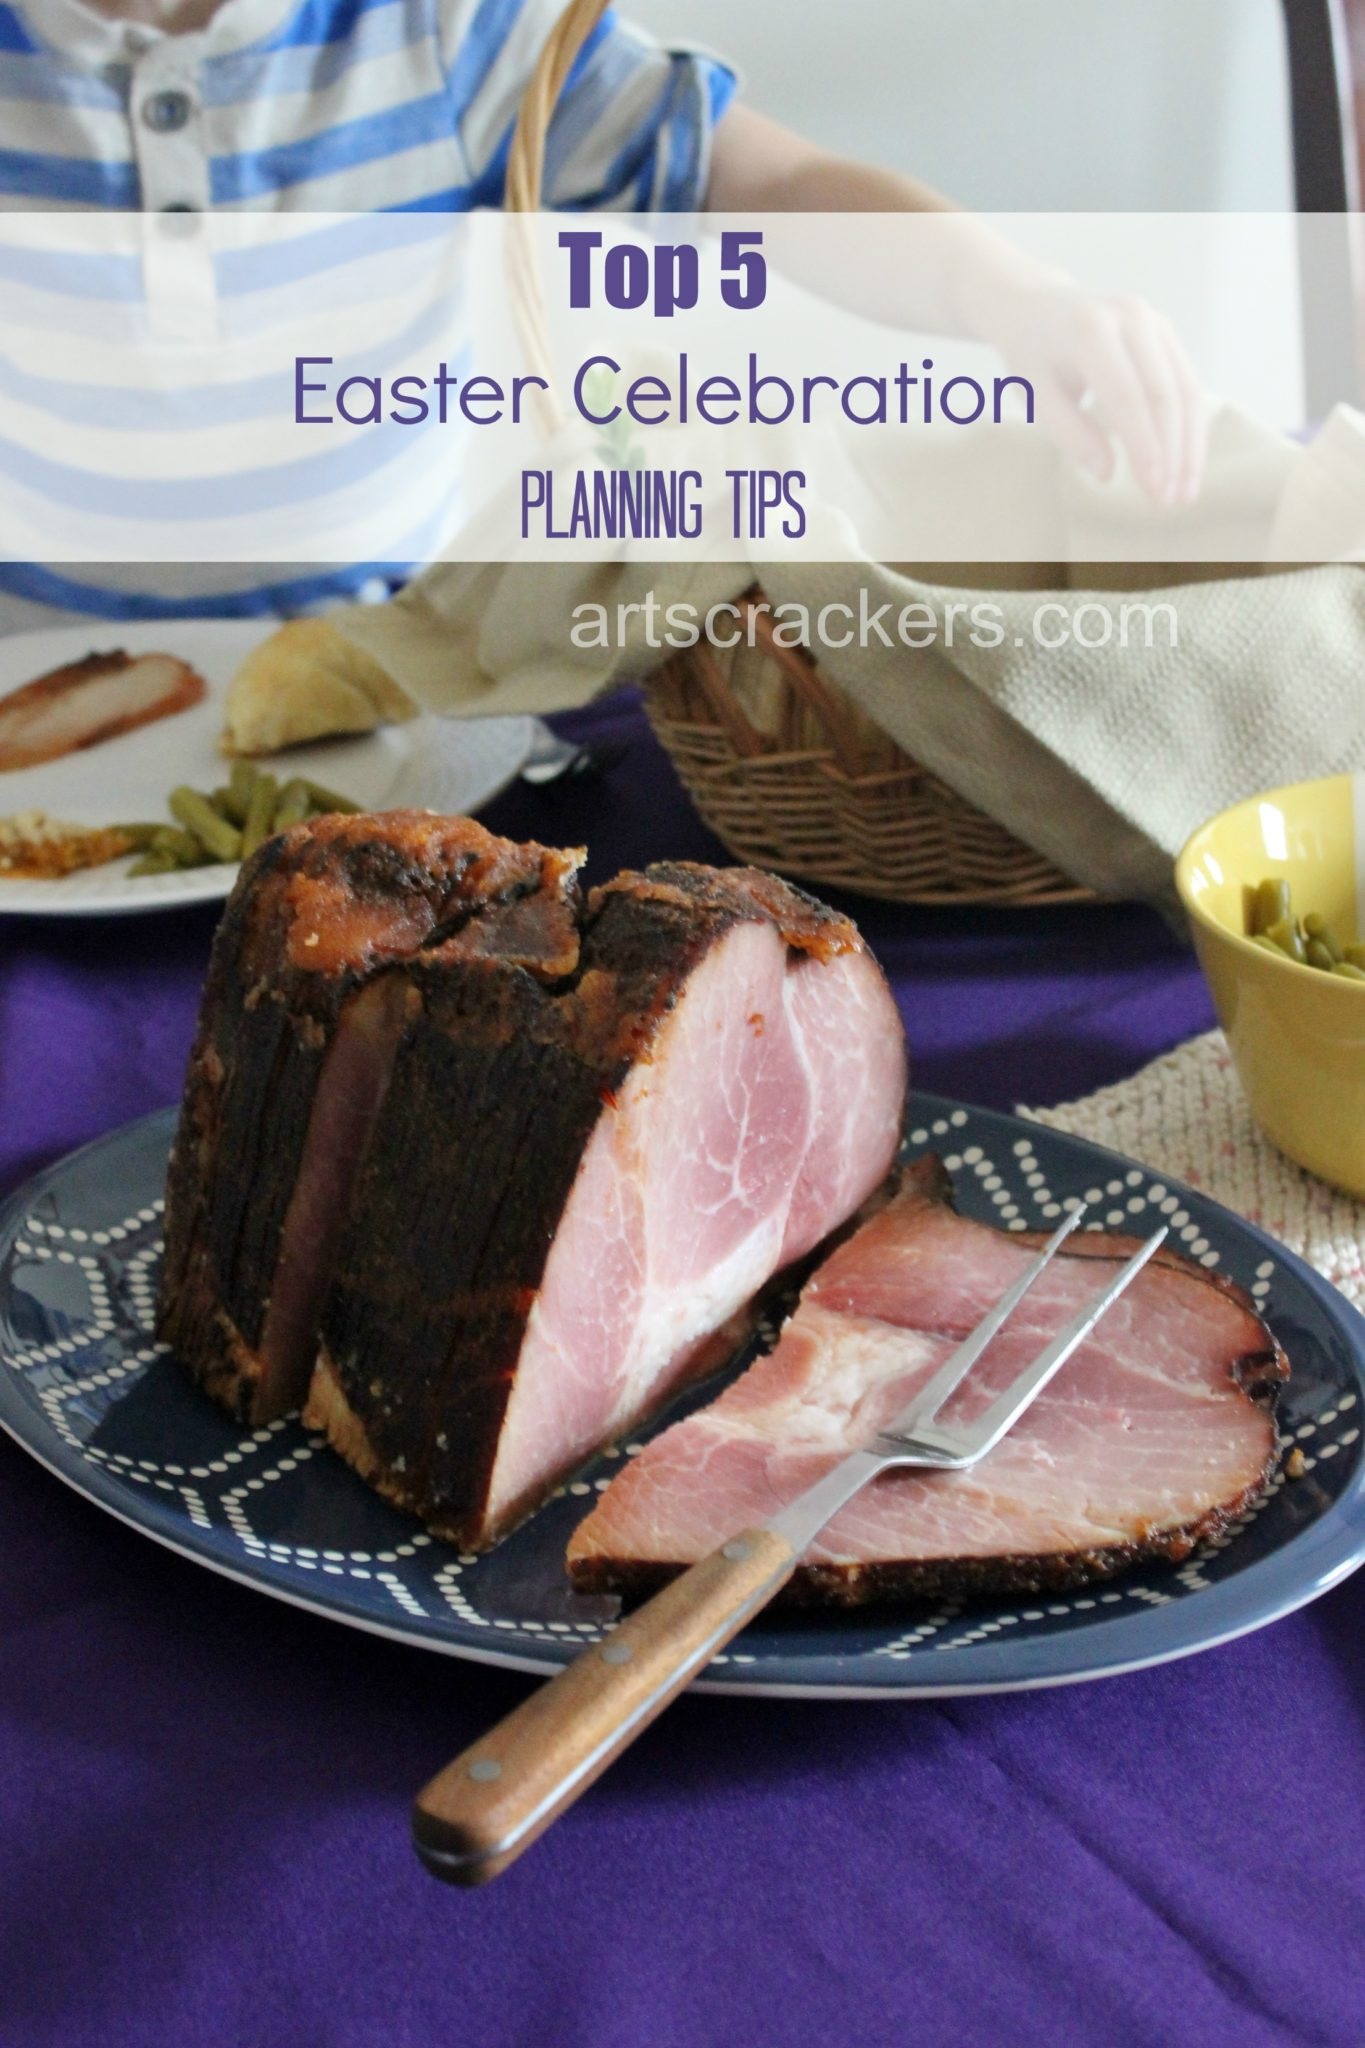 Top 5 Easter Planning Tips with HoneyBaked Ham. Click to read them.